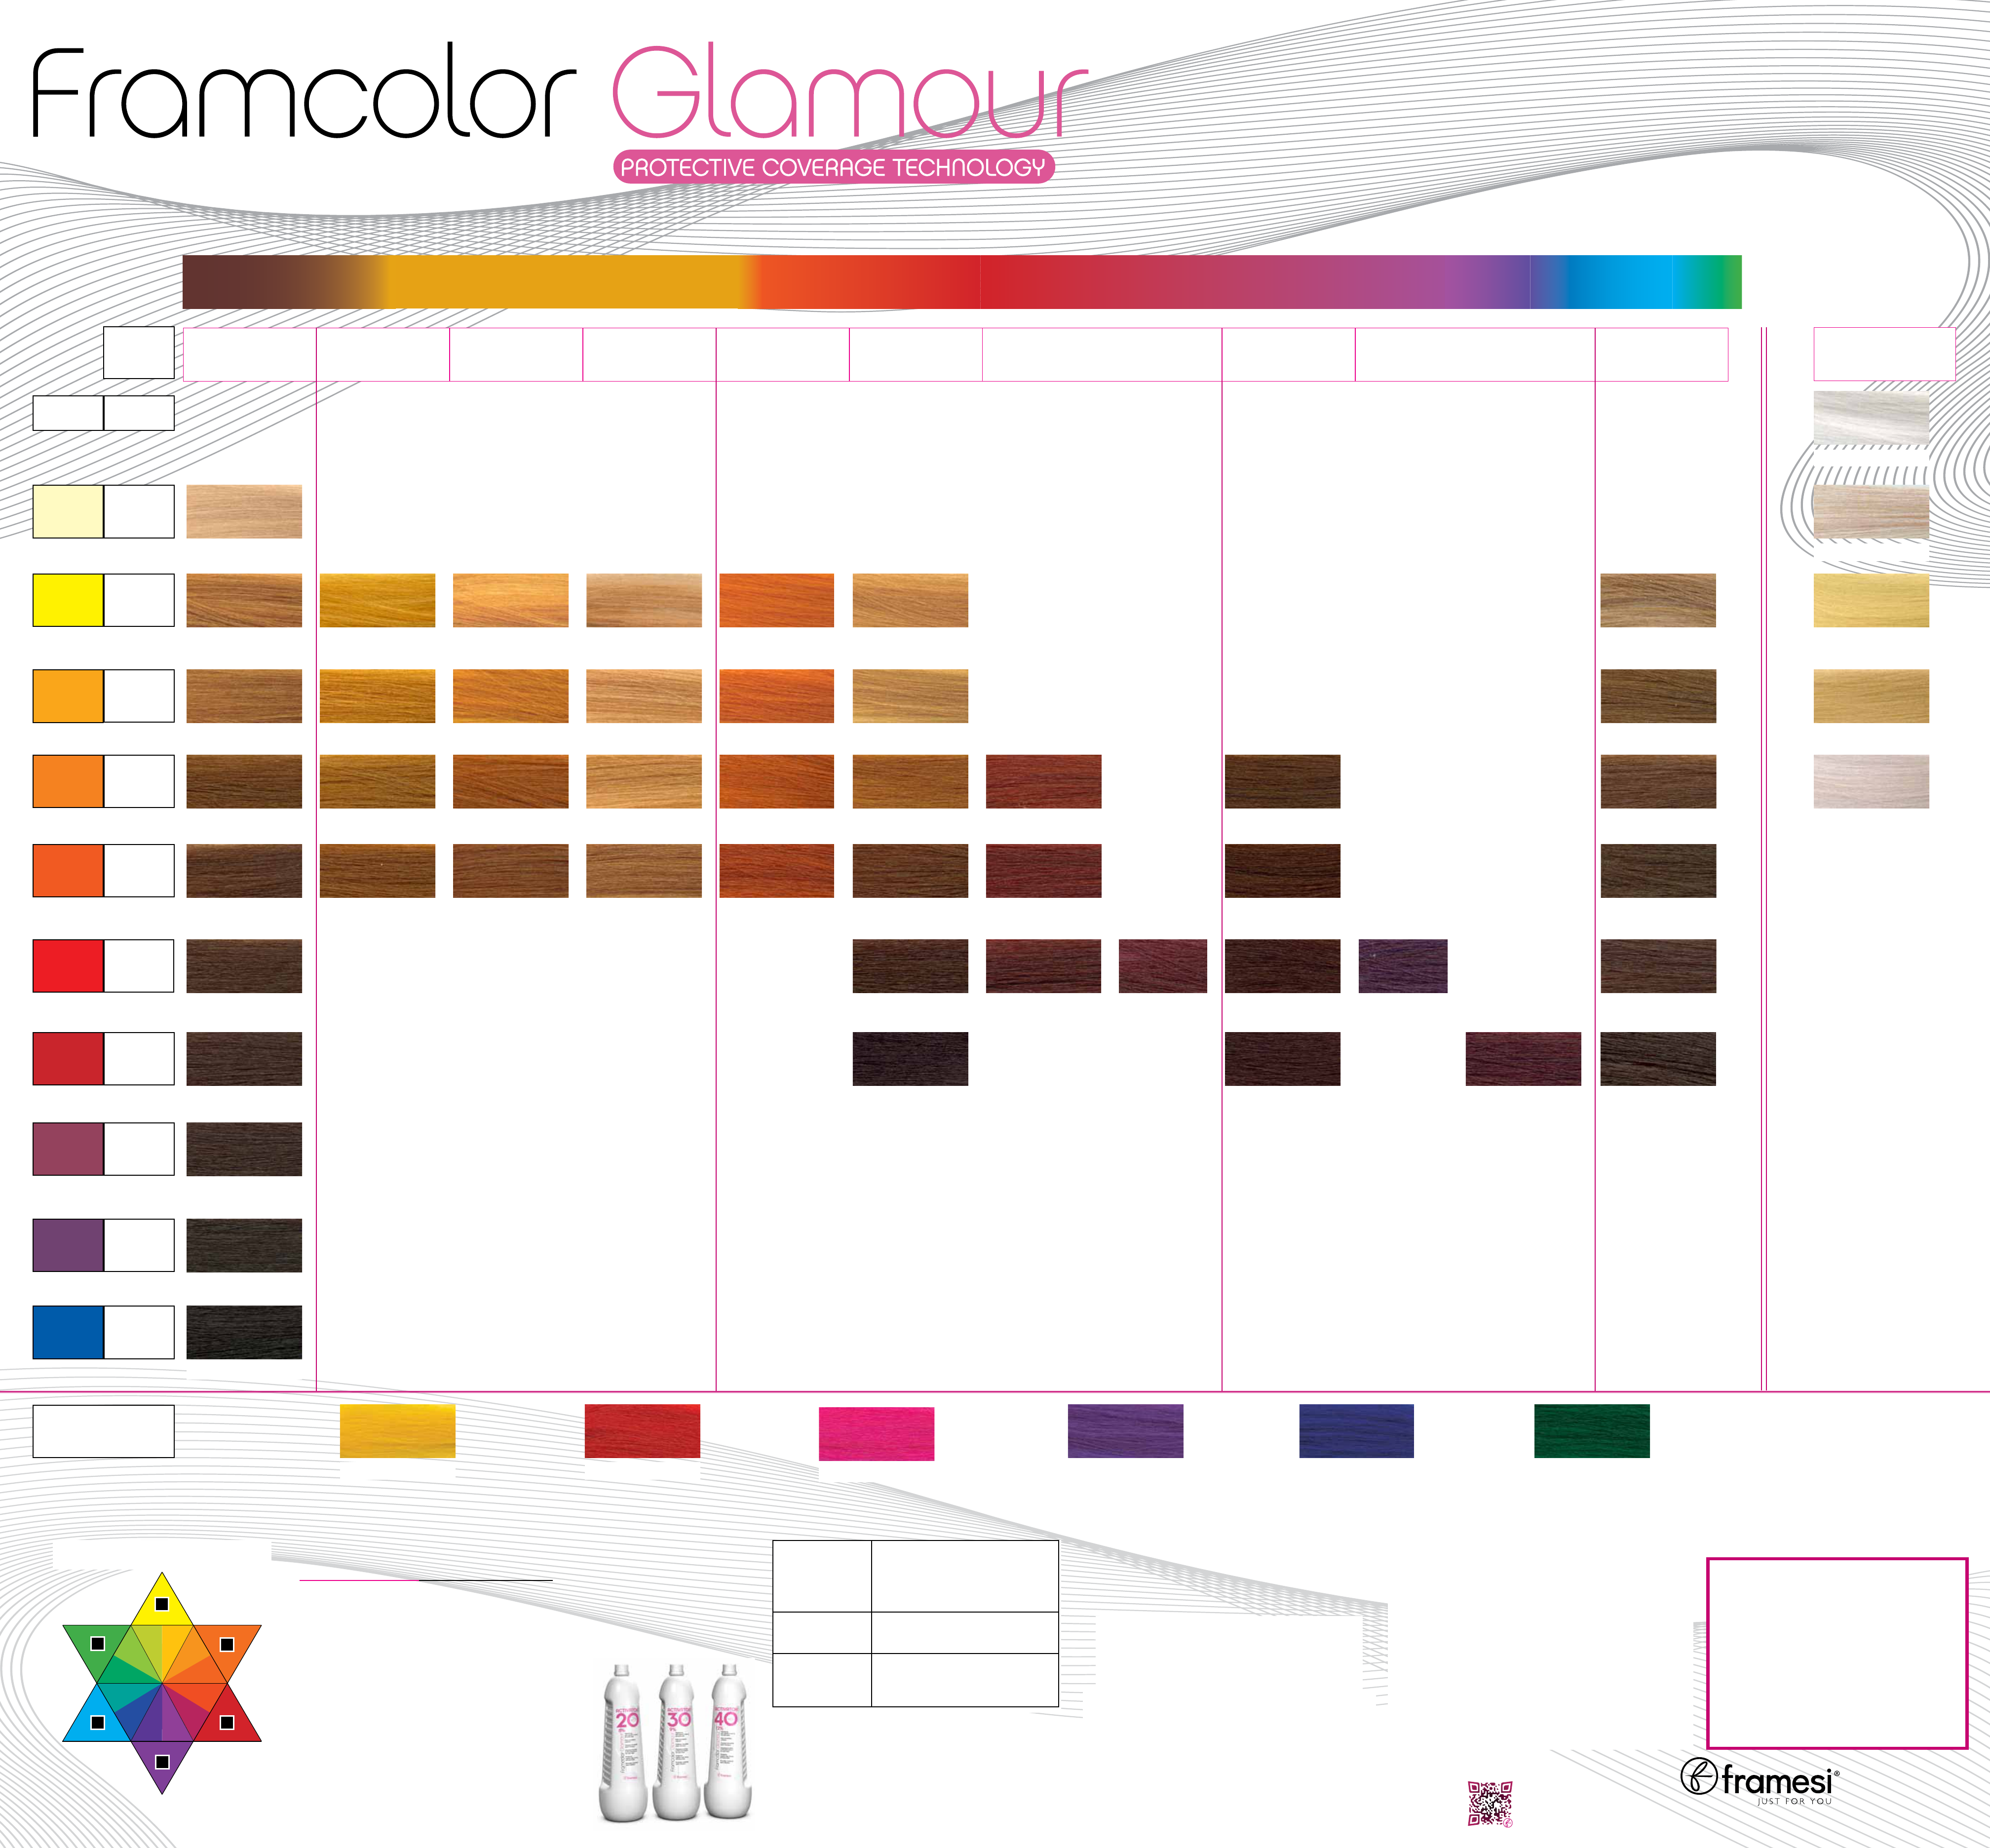 Free Framcolor Glamour Hair Color Wall Chart Pdf 788kb 1 Page S